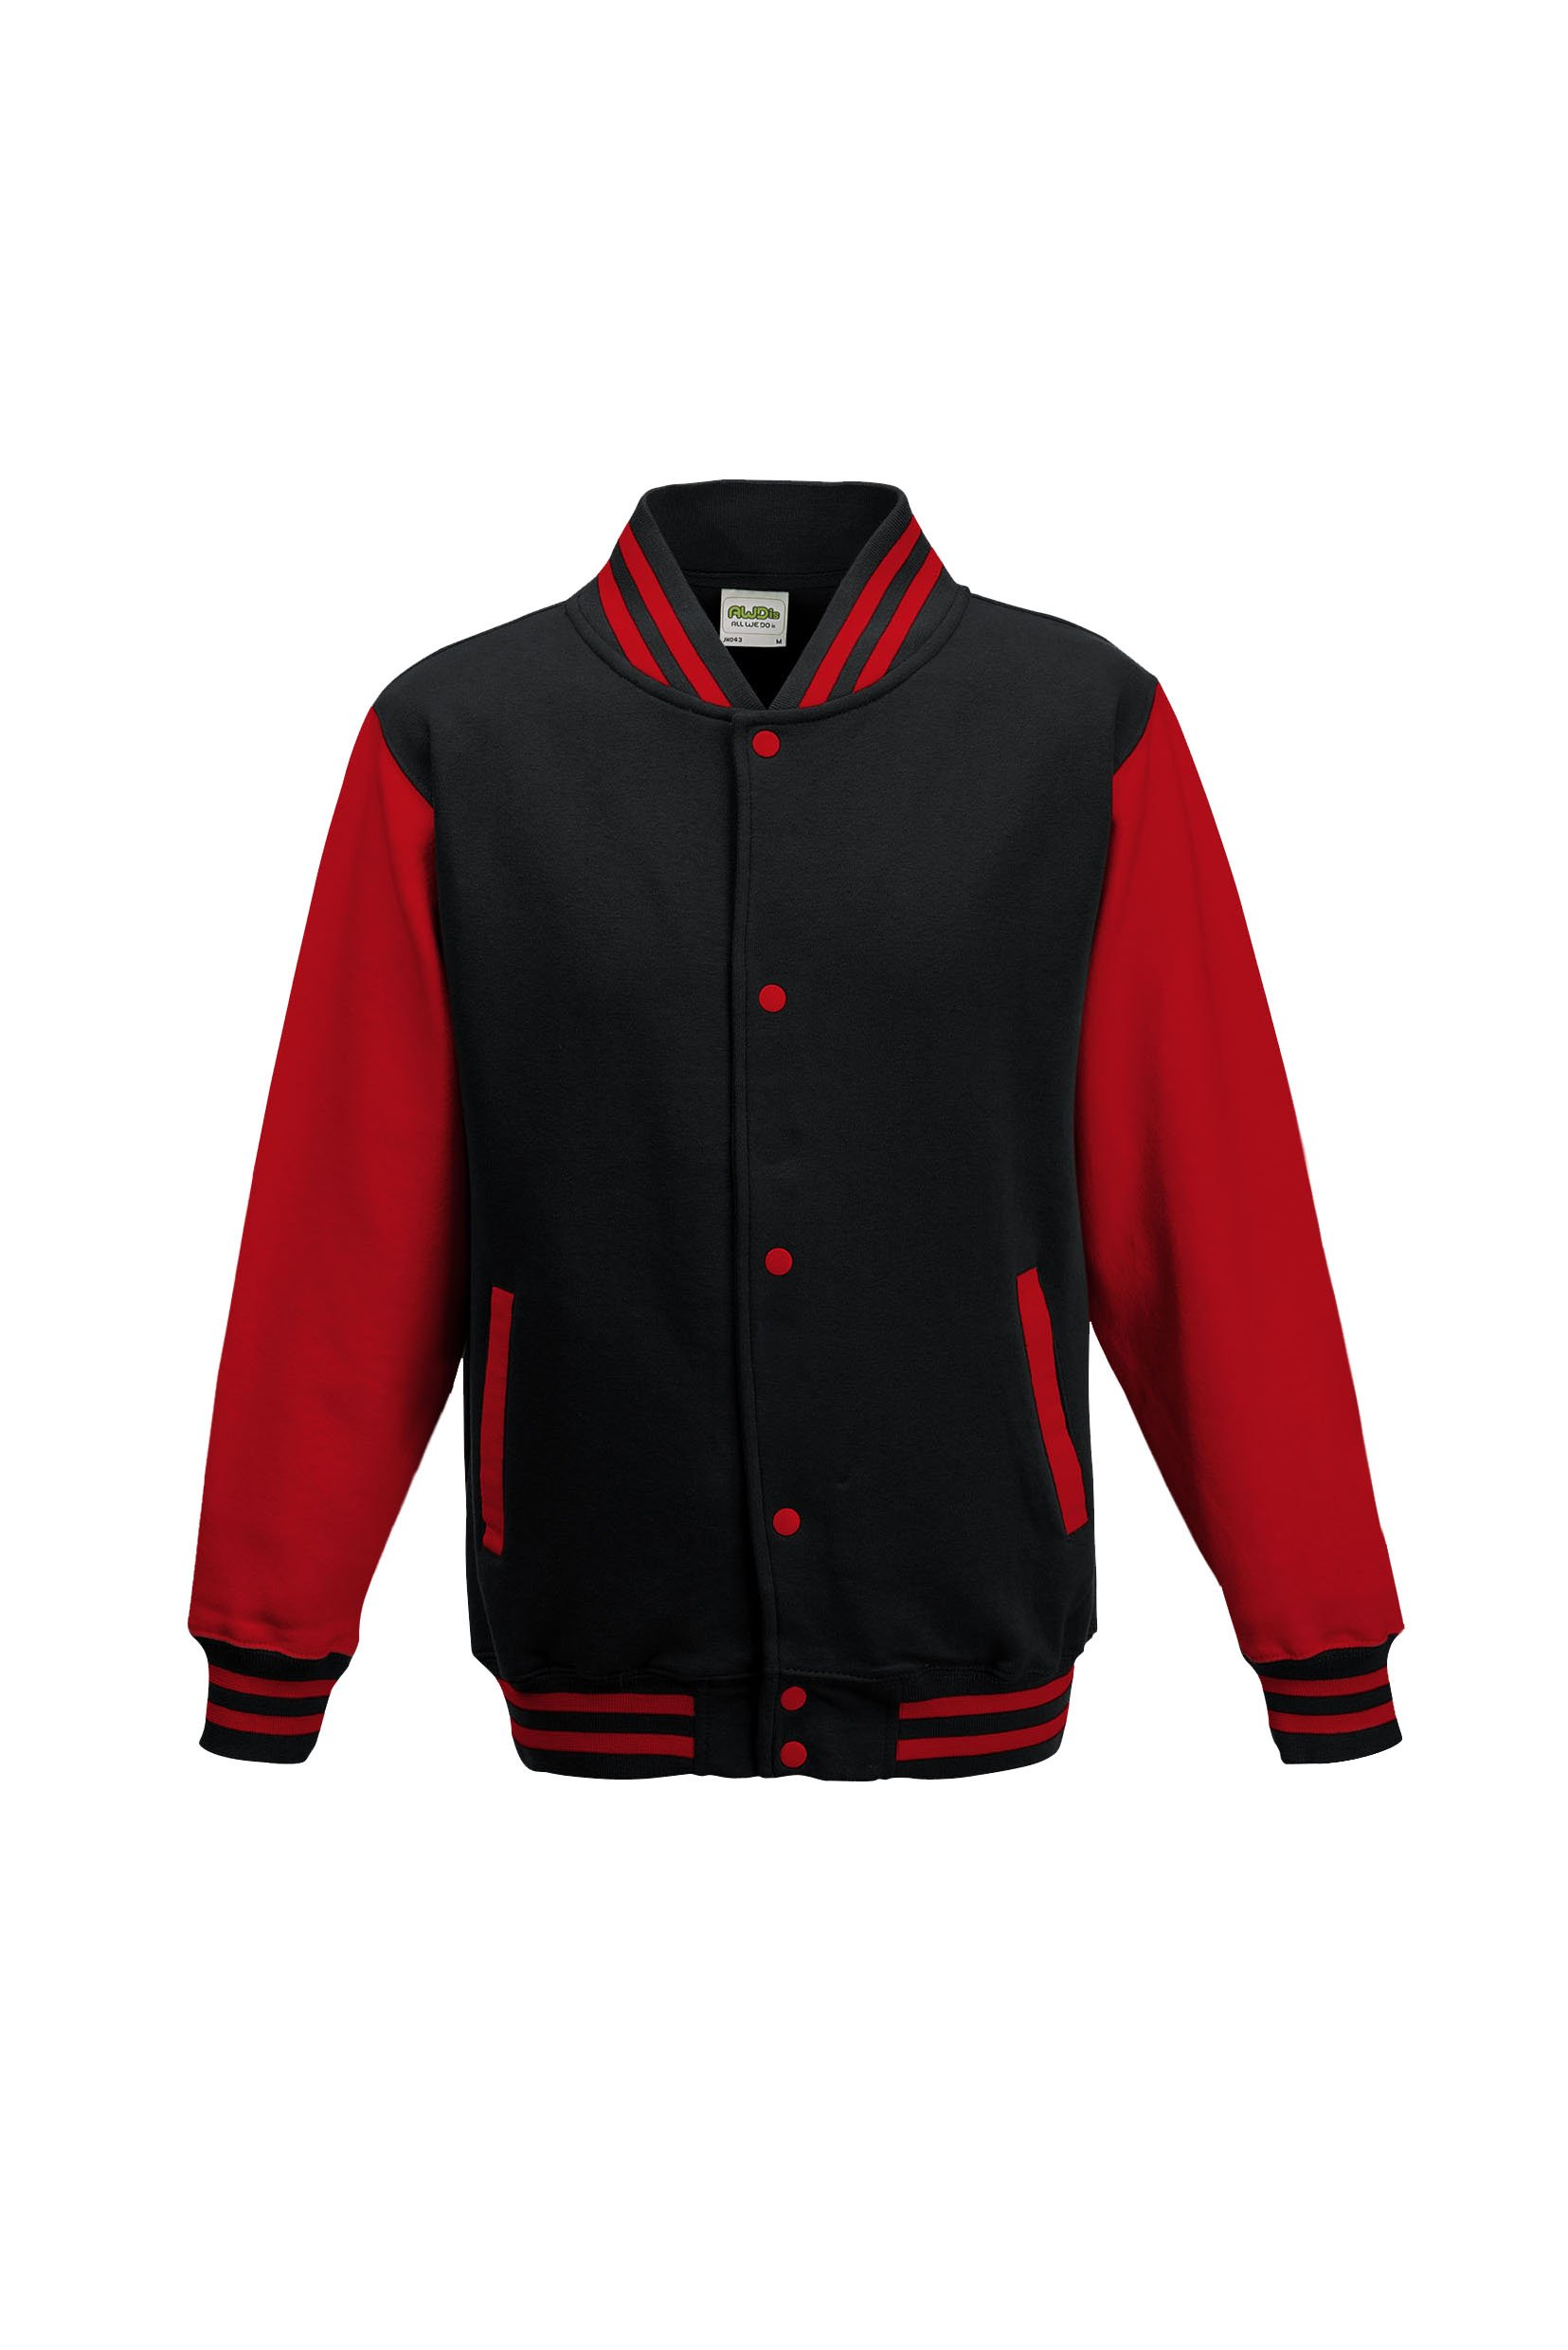 AWDis Hoods Big Boys' Varsity Letterman Jacket (Ages 9 - 11 (chest 32in), Jet Black / Fire Red)